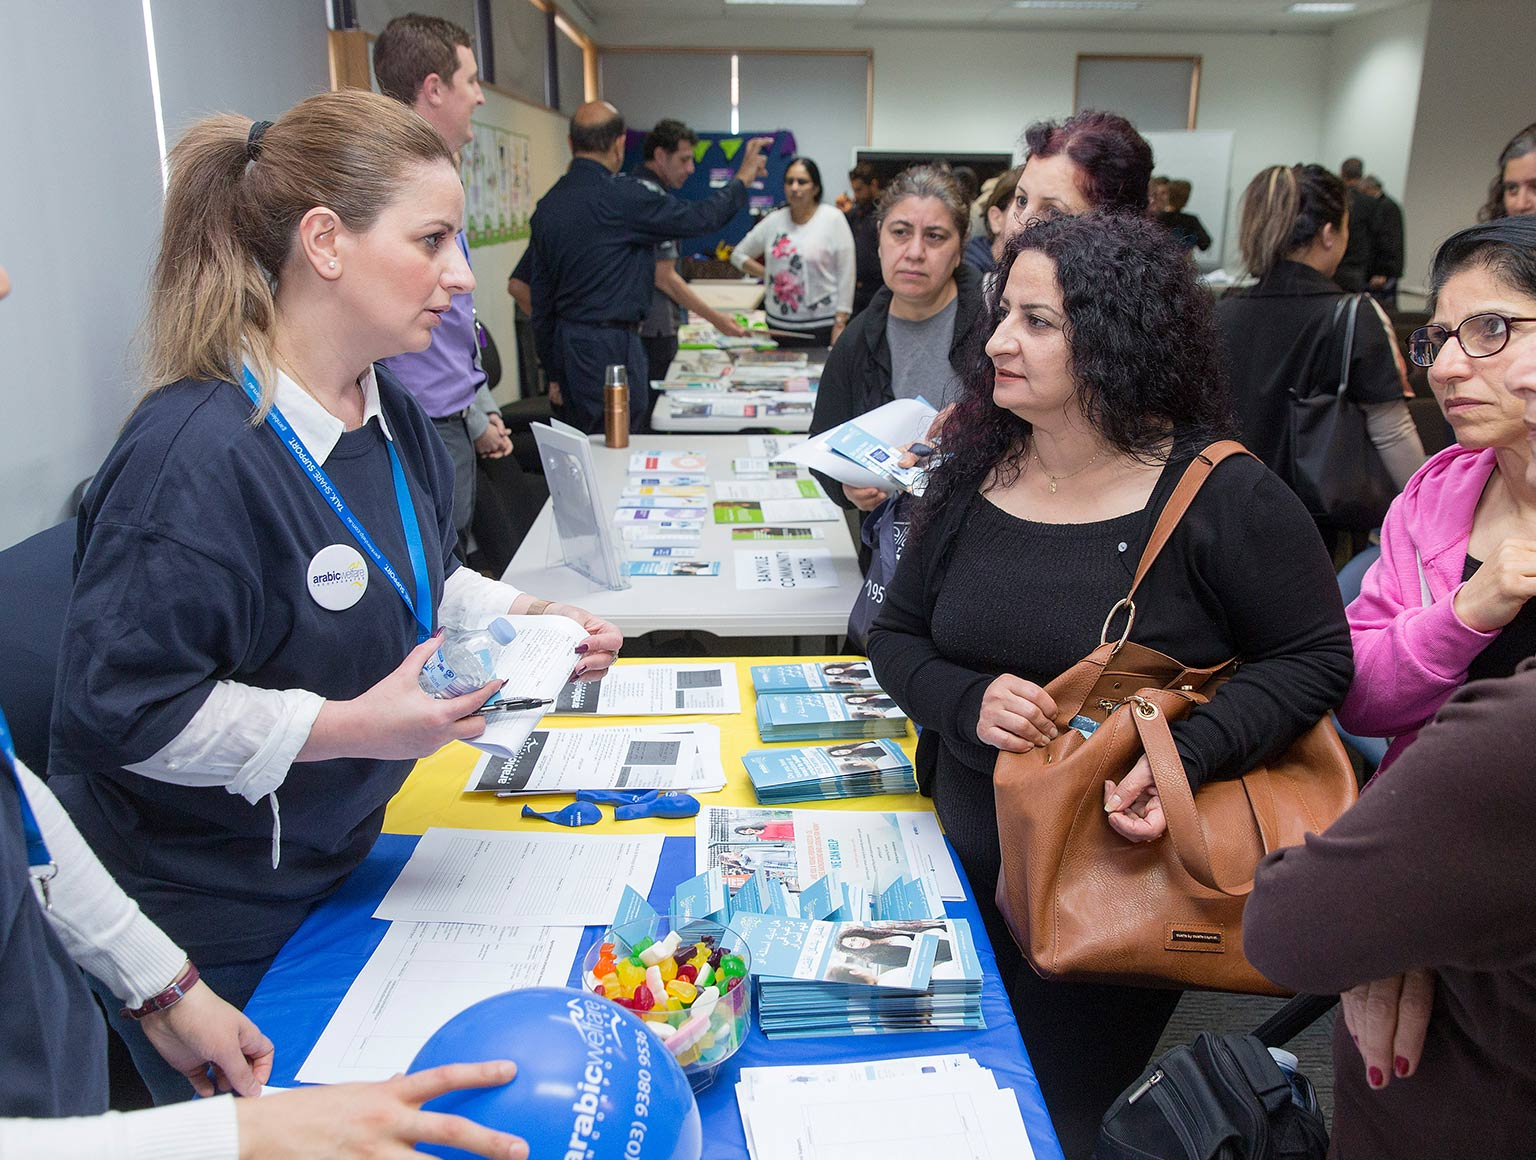 Two young women, one wearing a hijab and the other with a pony tail and an Arabic Welfare badge, speaking to a group of older women over an information table with brochures, people clustered around other tables with brochures in background.